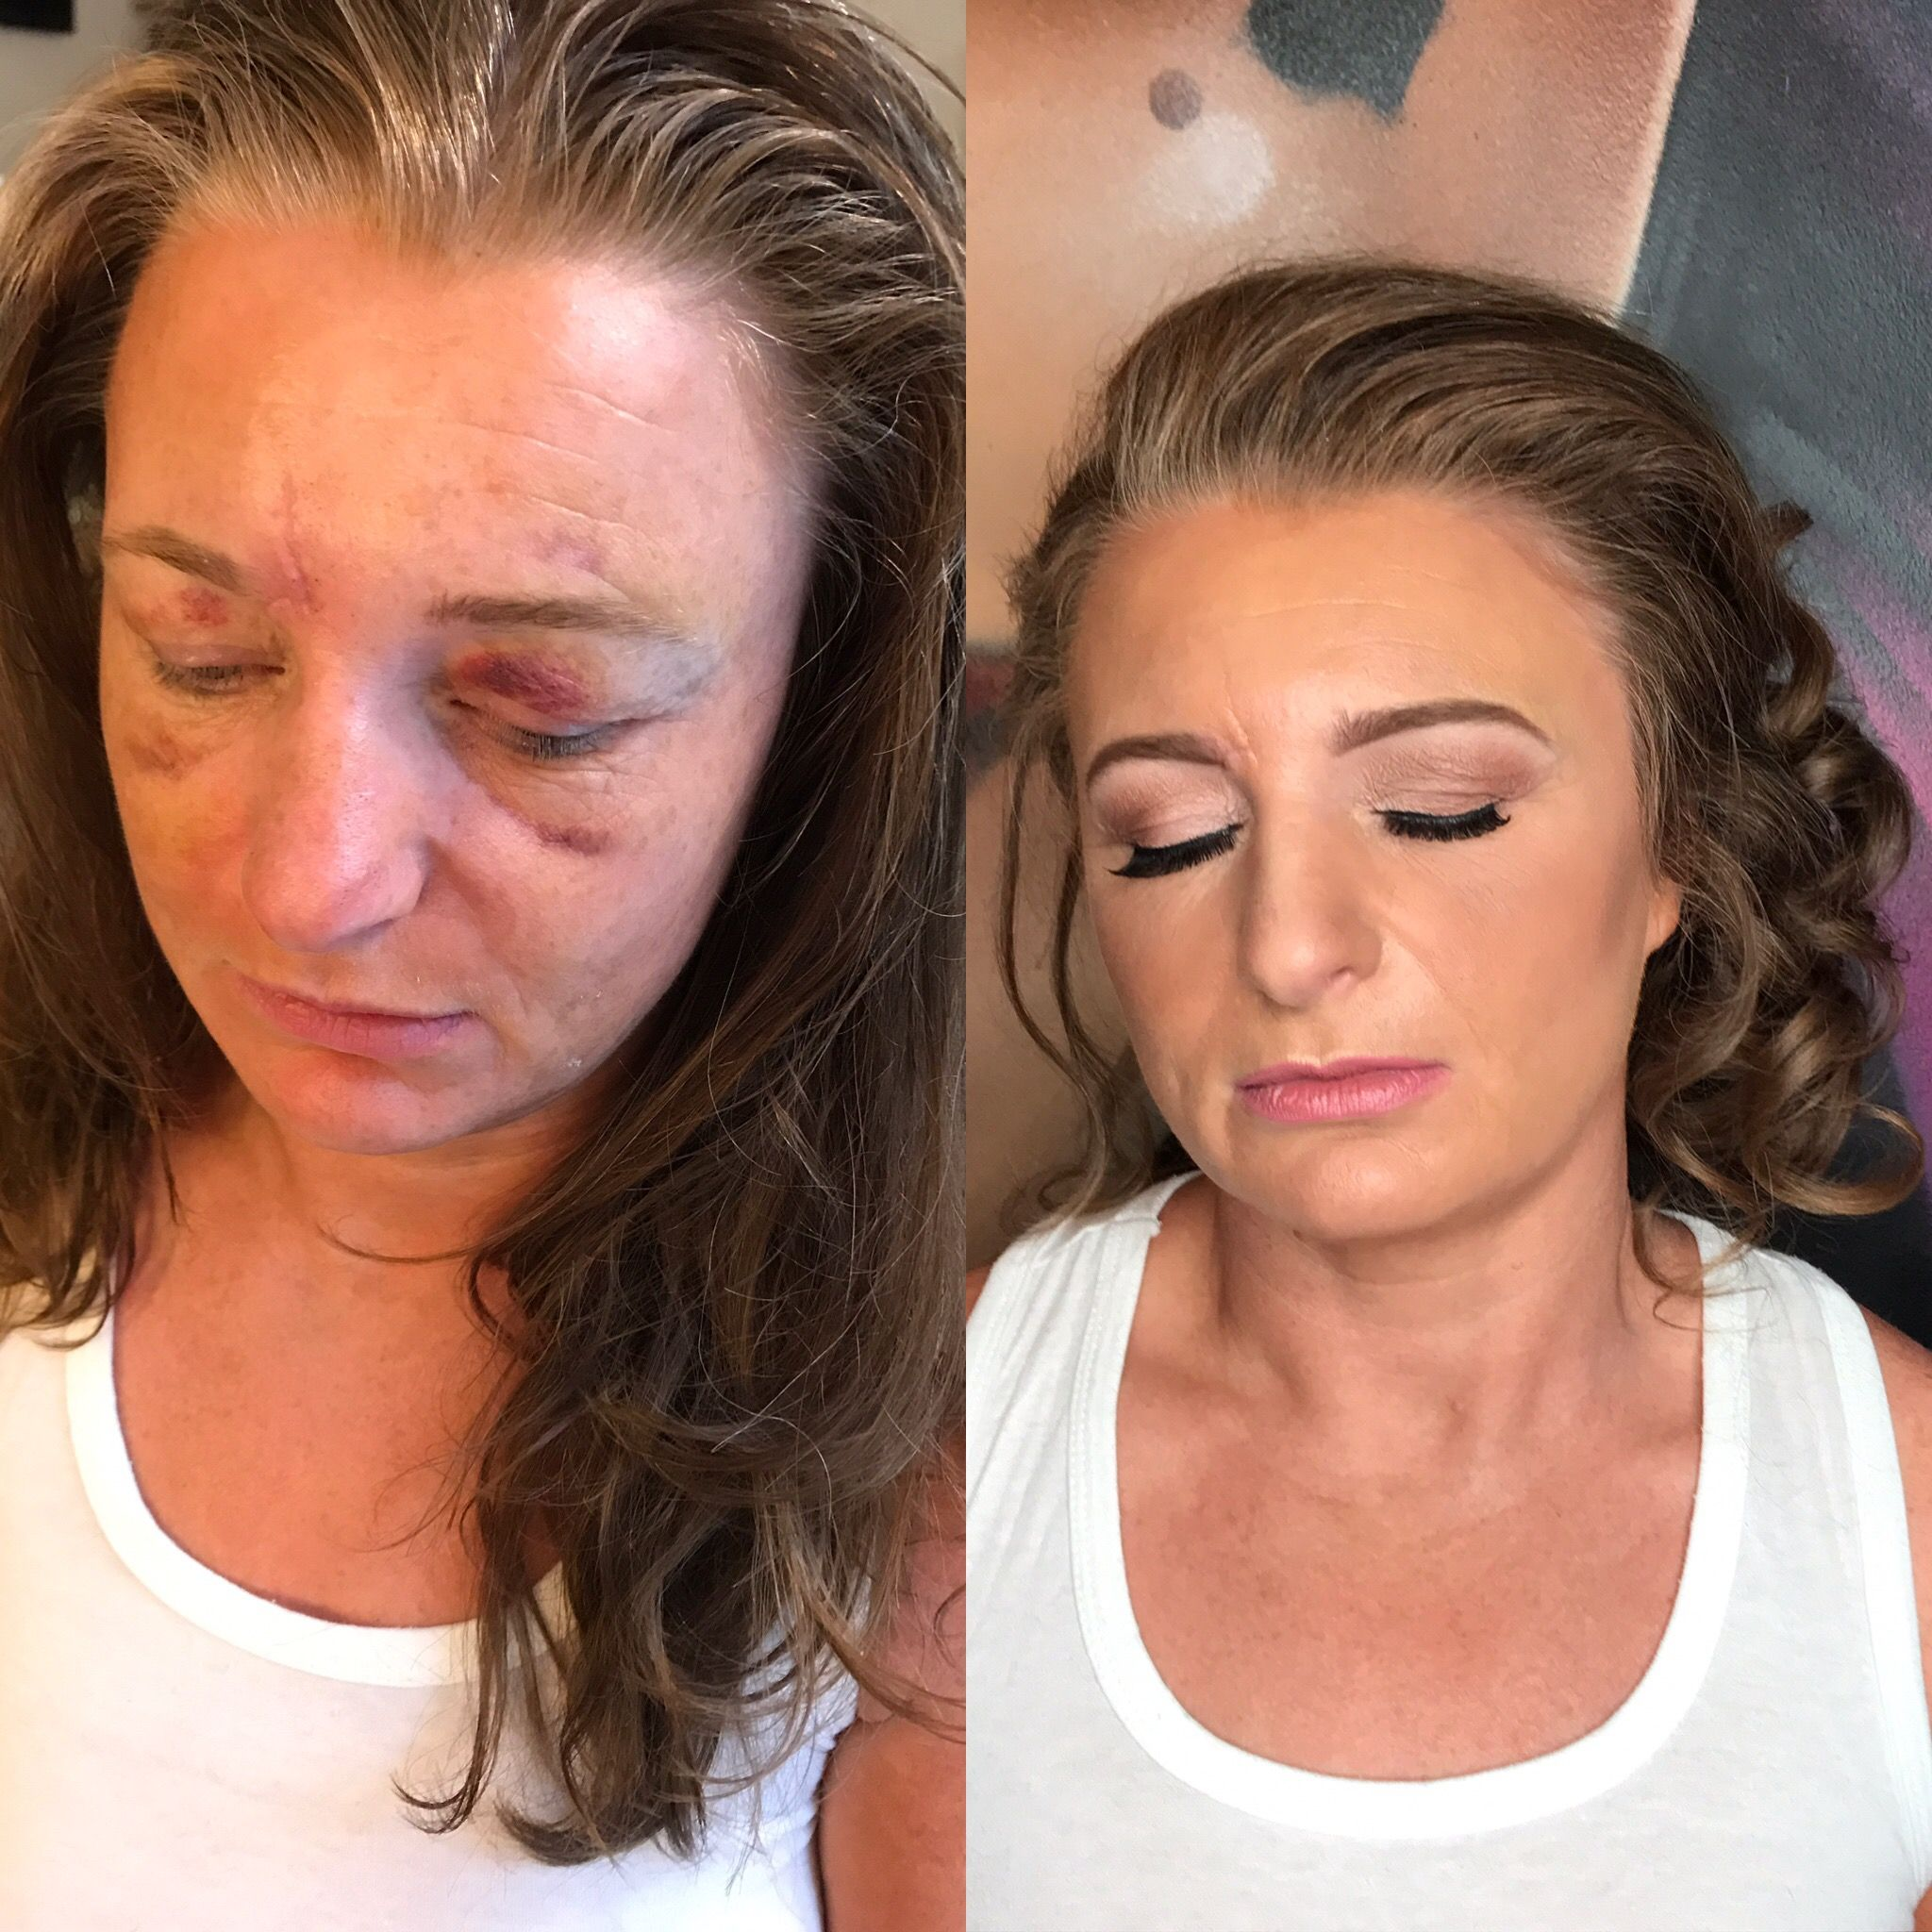 Before & After Hair and makeup. Covering bruises with